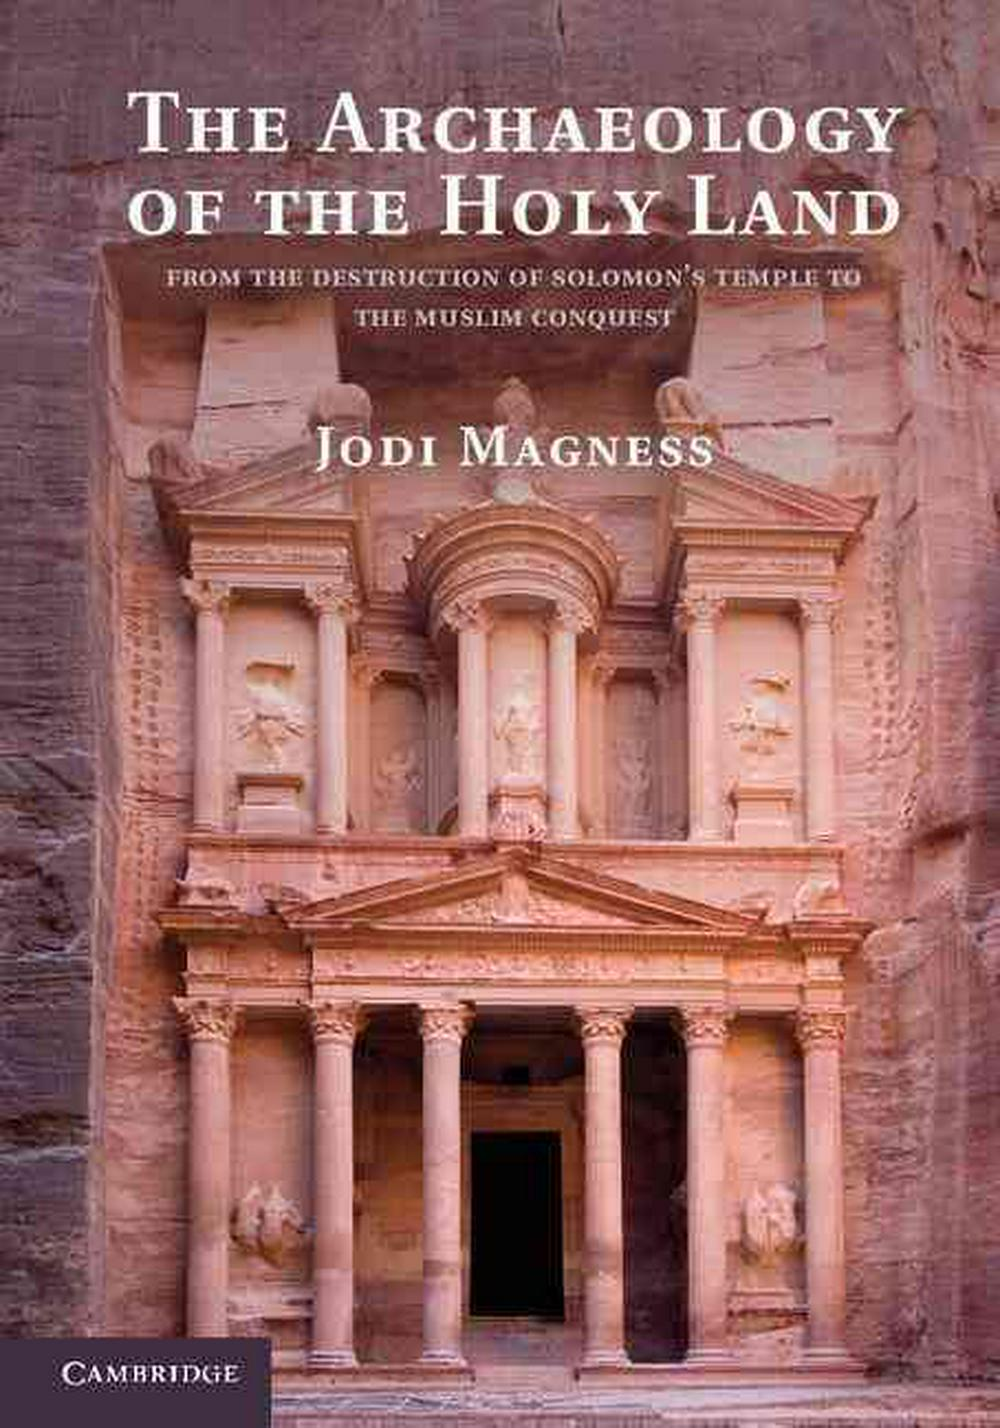 The Archaeology of the Holy Land